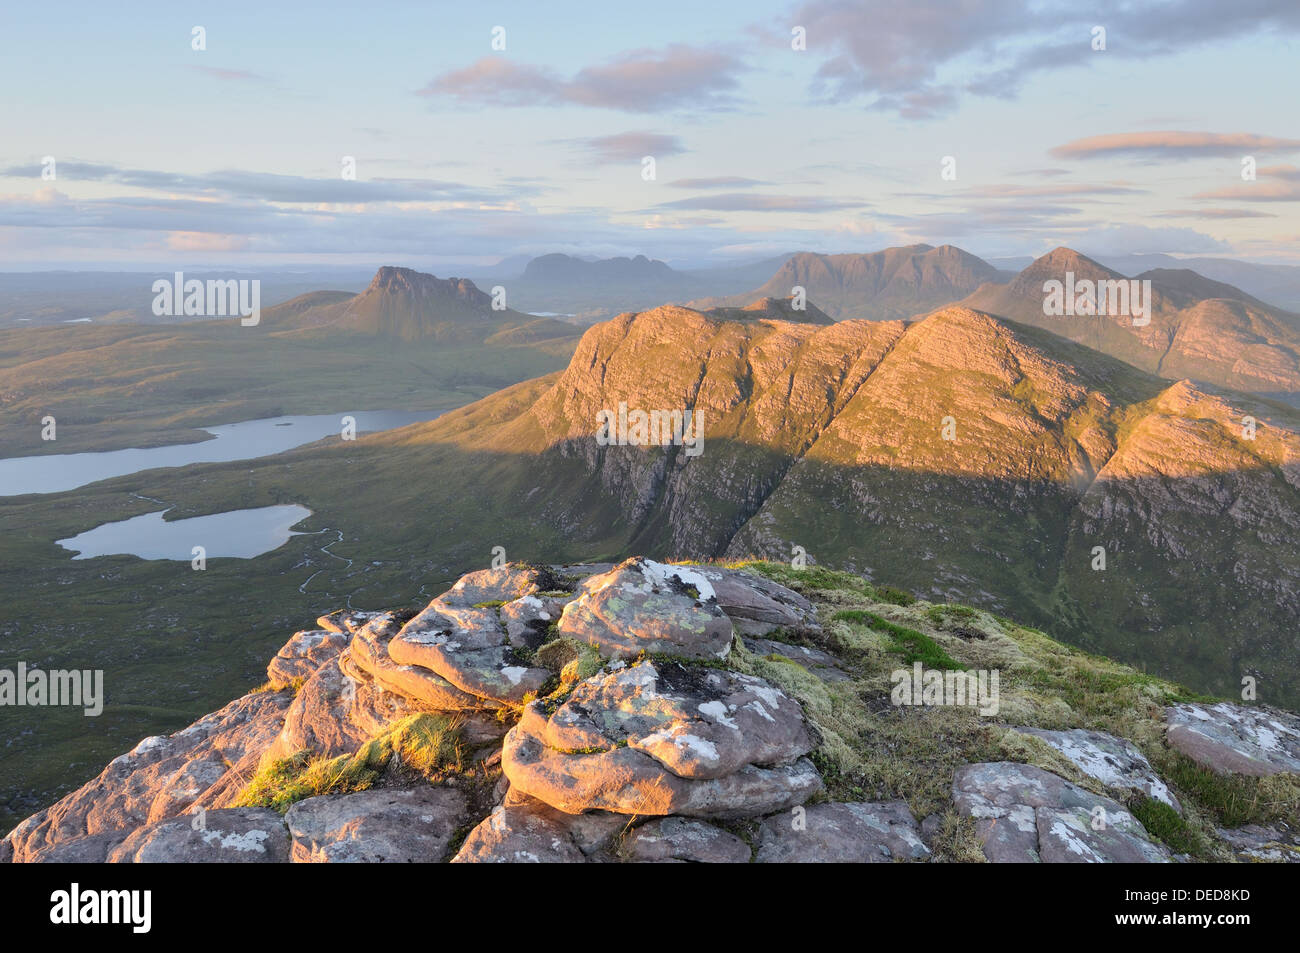 Late evening sunlight on Stac Pollaidh, Beinn an Eoin, Cul Mor, Cul Beag, Suilven and the mountains of Inverpolly, Assynt - Stock Image